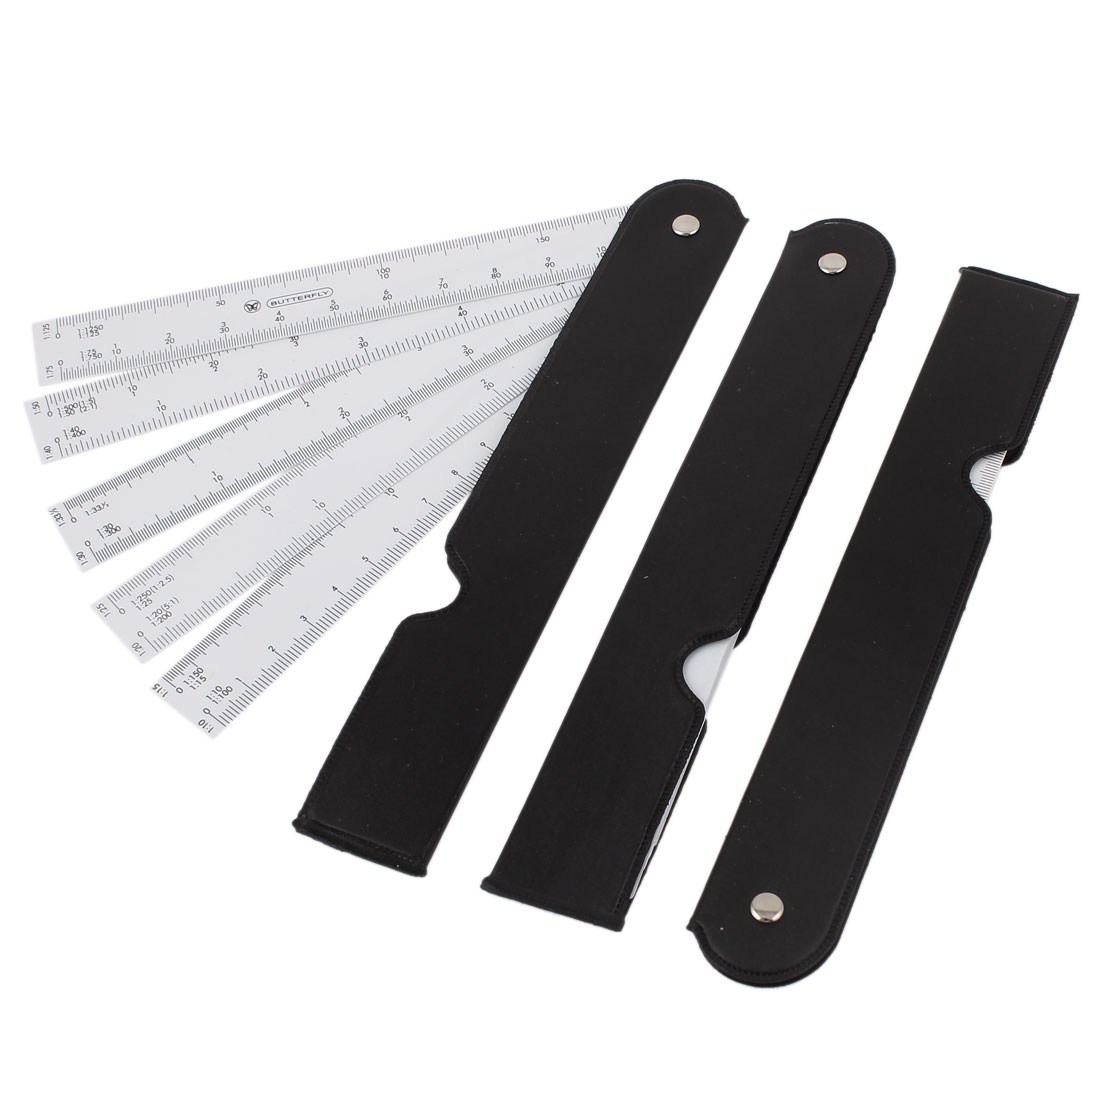 """Unique Bargains 3 Pcs Stainless Steel 8"""" Straight Ruler Educational Students Stationery Measuring Tool Silver Tone"""